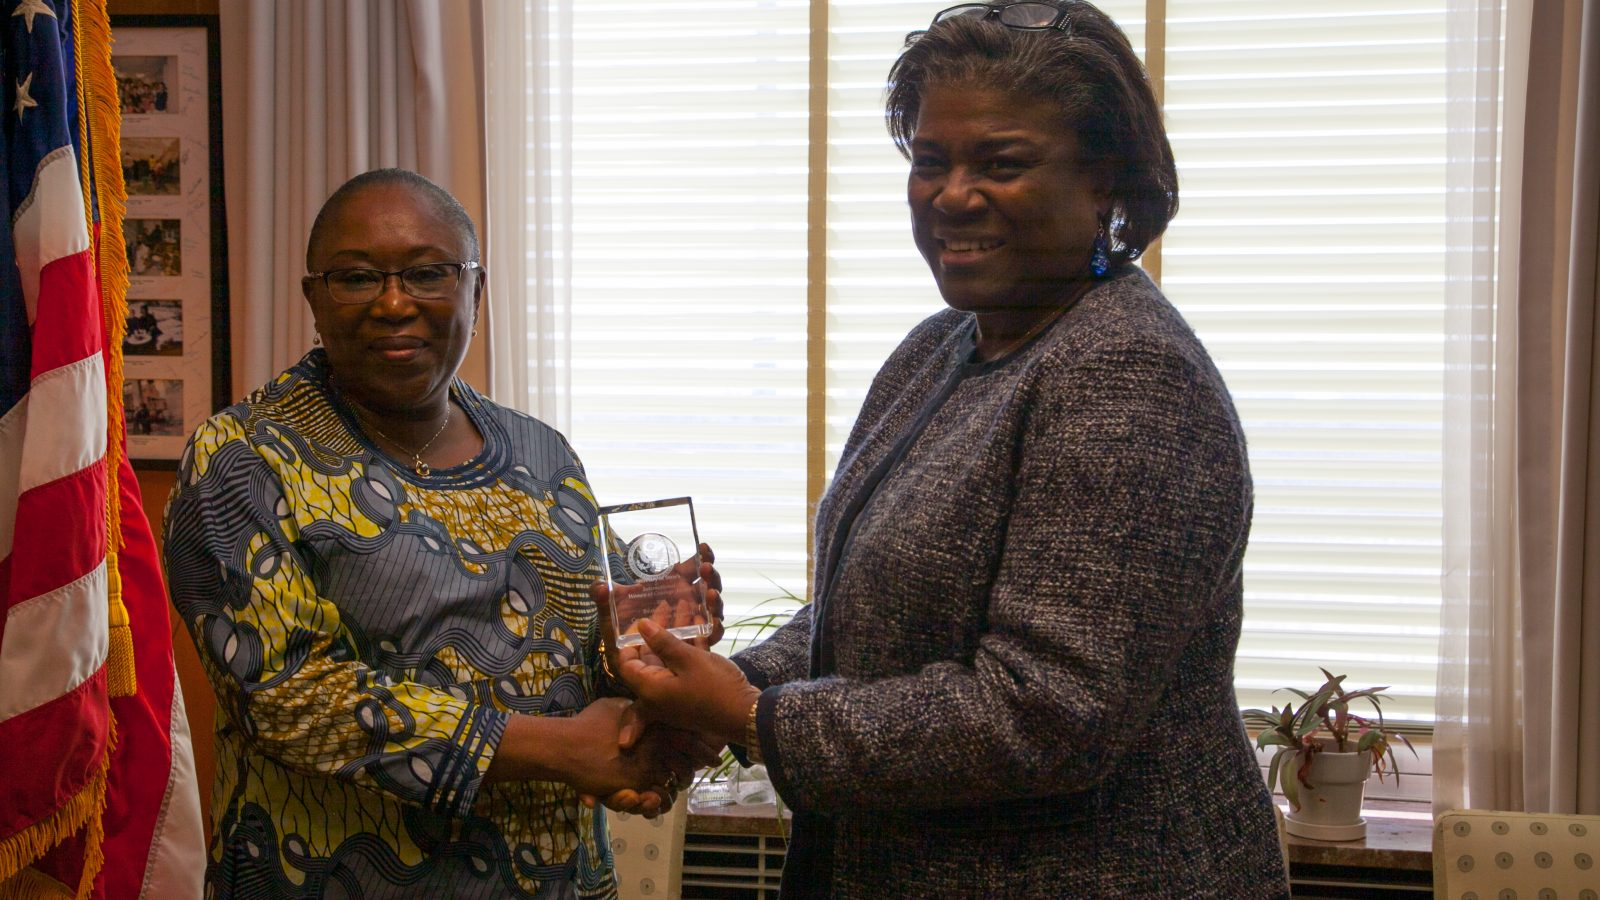 Assistant Secretary Linda Thomas-Greenfield who leads the Department of State's Bureau of African Affairs, gives International Women of Courage Award to Beatrice Epaye President, Fondation Voix du Coeur from Central African Republic